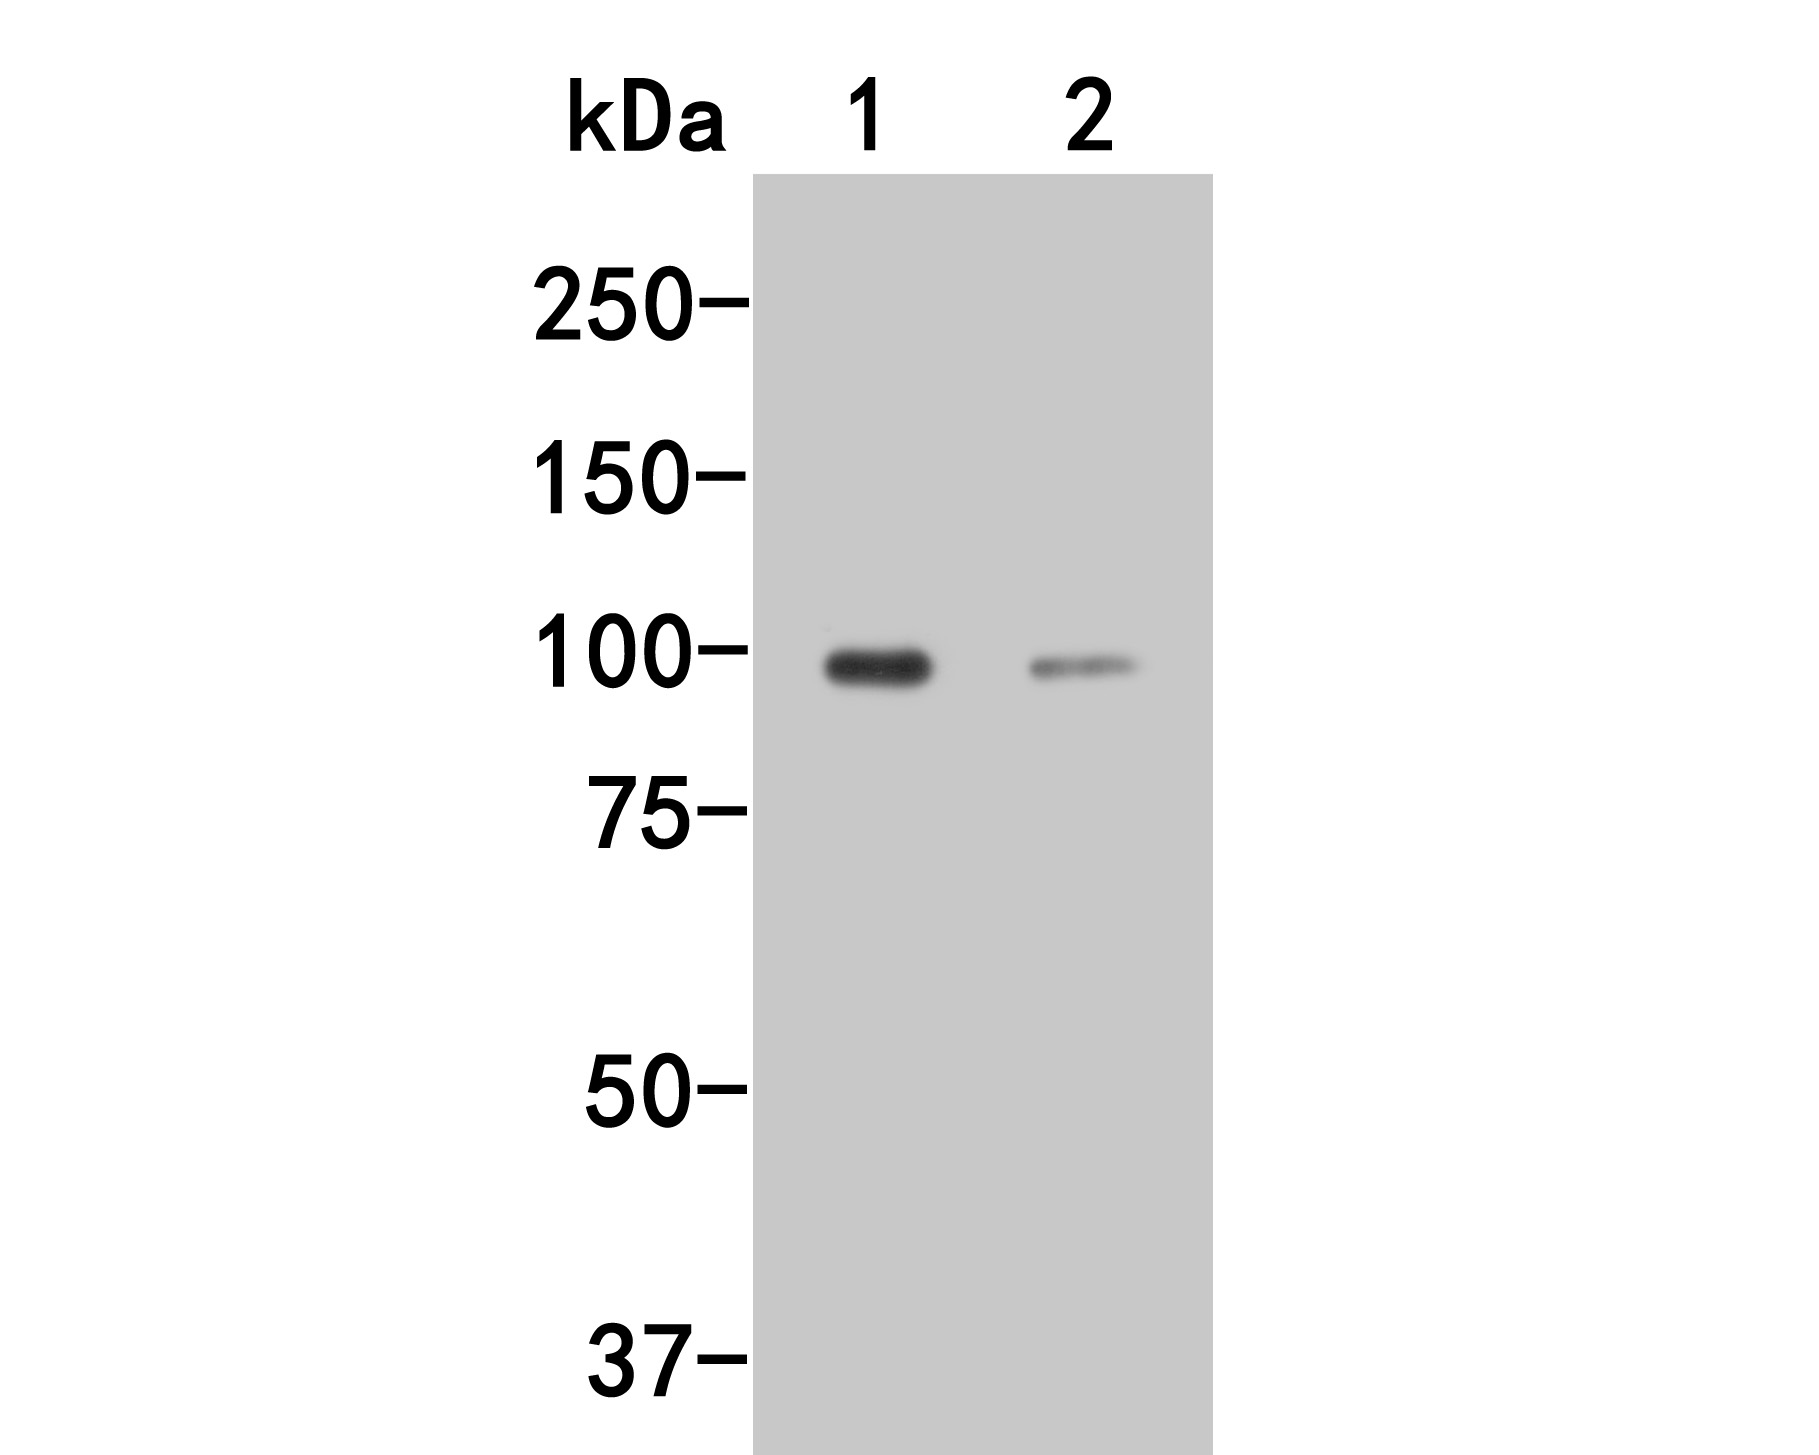 Western blot analysis of Dynamin 3 on different lysates. Proteins were transferred to a PVDF membrane and blocked with 5% BSA in PBS for 1 hour at room temperature. The primary antibody (HA500037, 1/500) was used in 5% BSA at room temperature for 2 hours. Goat Anti-Rabbit IgG - HRP Secondary Antibody (HA1001) at 1:5,000 dilution was used for 1 hour at room temperature.<br /> Positive control: <br /> Lane 1: Rat brain tissue lysate<br /> Lane 2: PC12 cell lysate